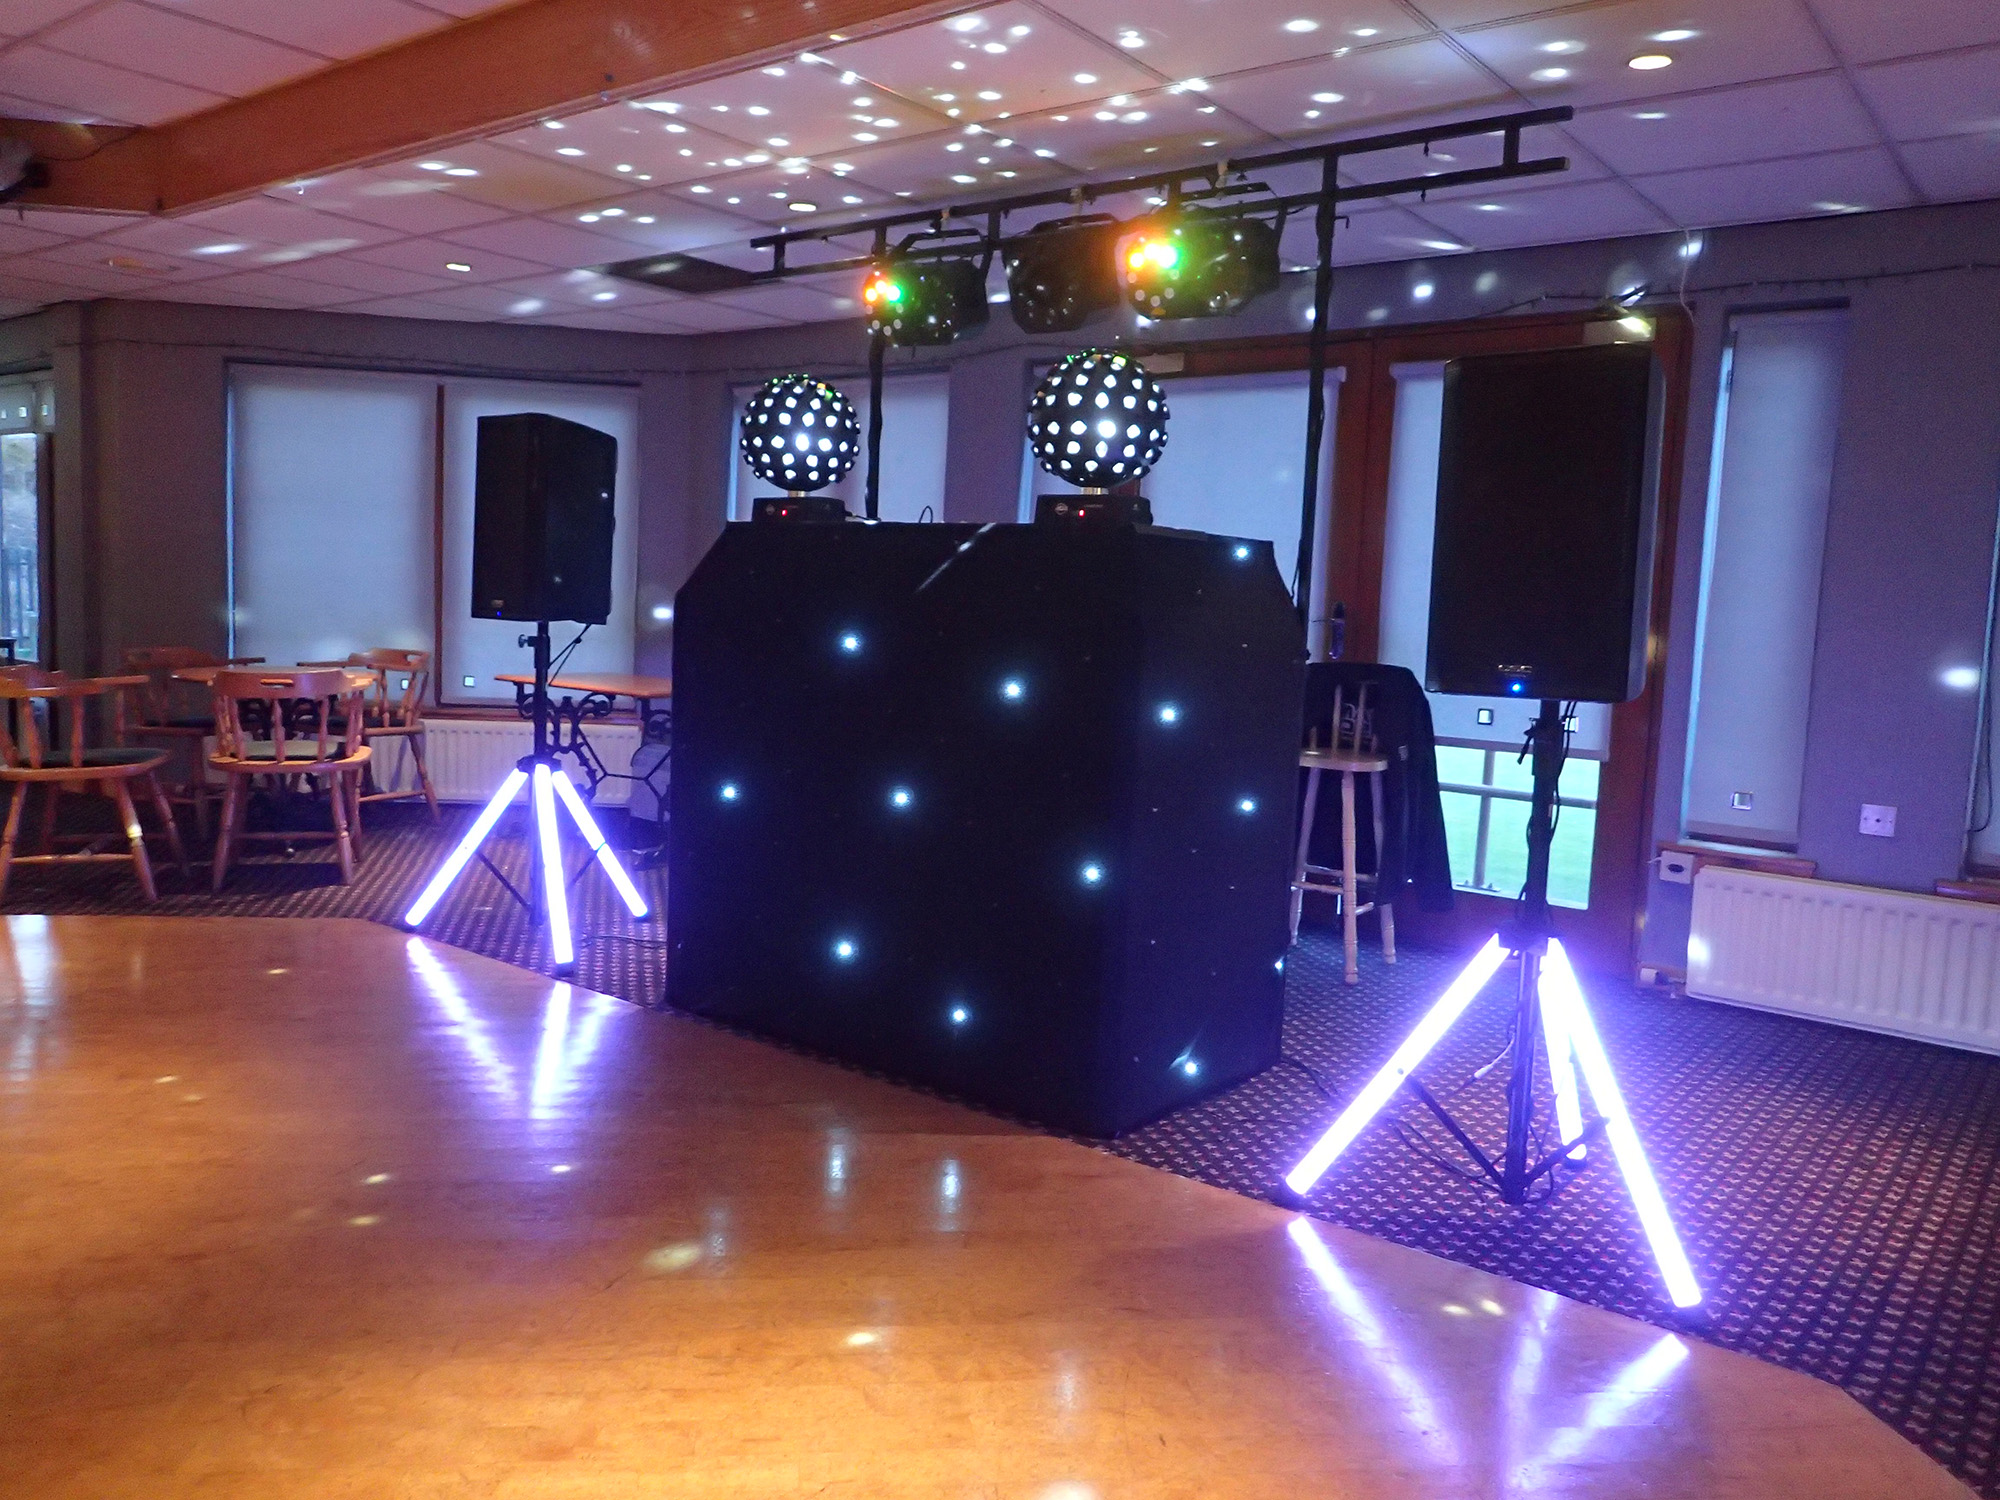 Beano Disco set up with light up speaker stands and disco balls